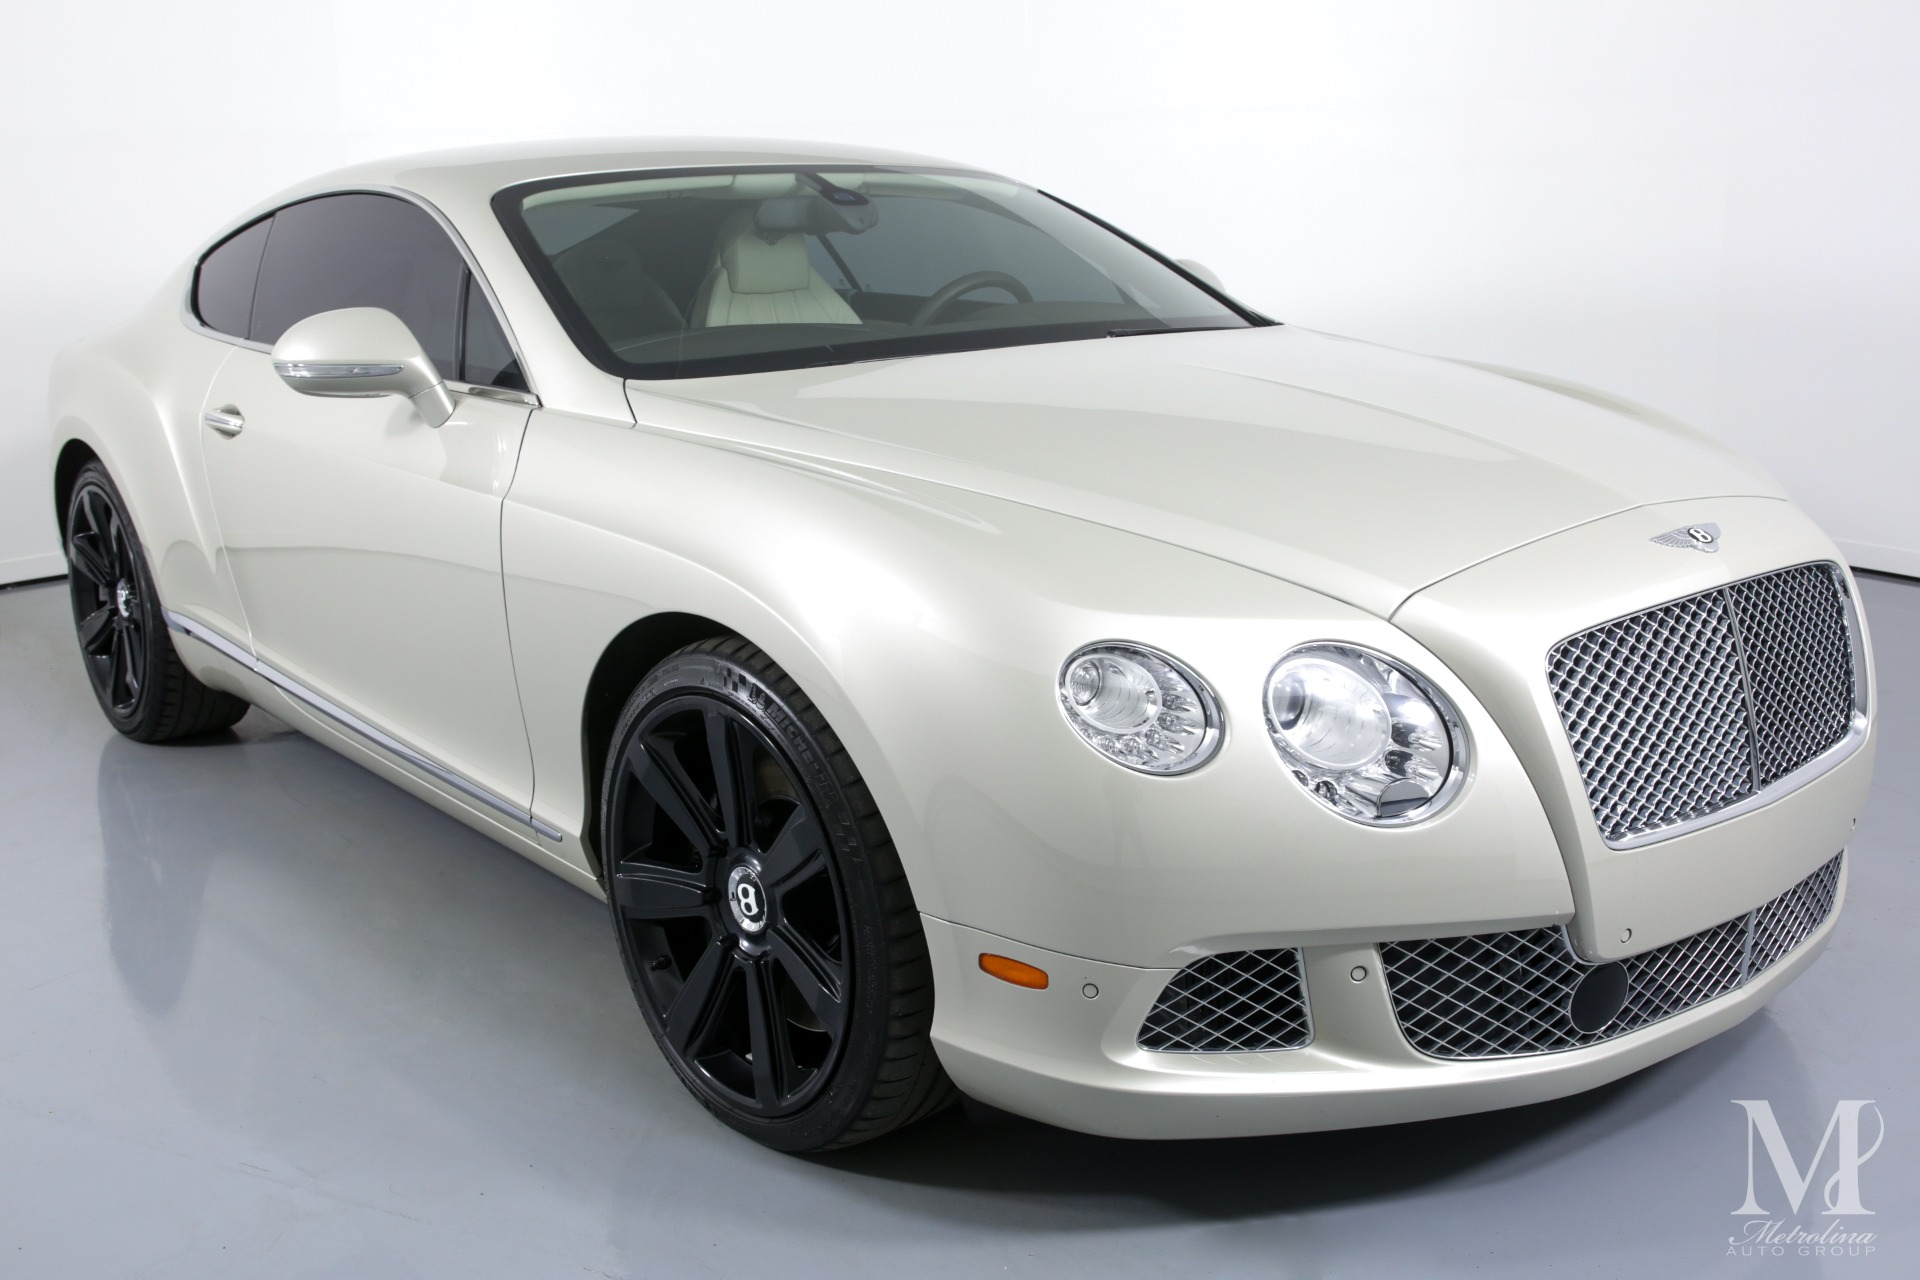 Used 2012 Bentley Continental GT for sale $74,996 at Metrolina Auto Group in Charlotte NC 28217 - 2